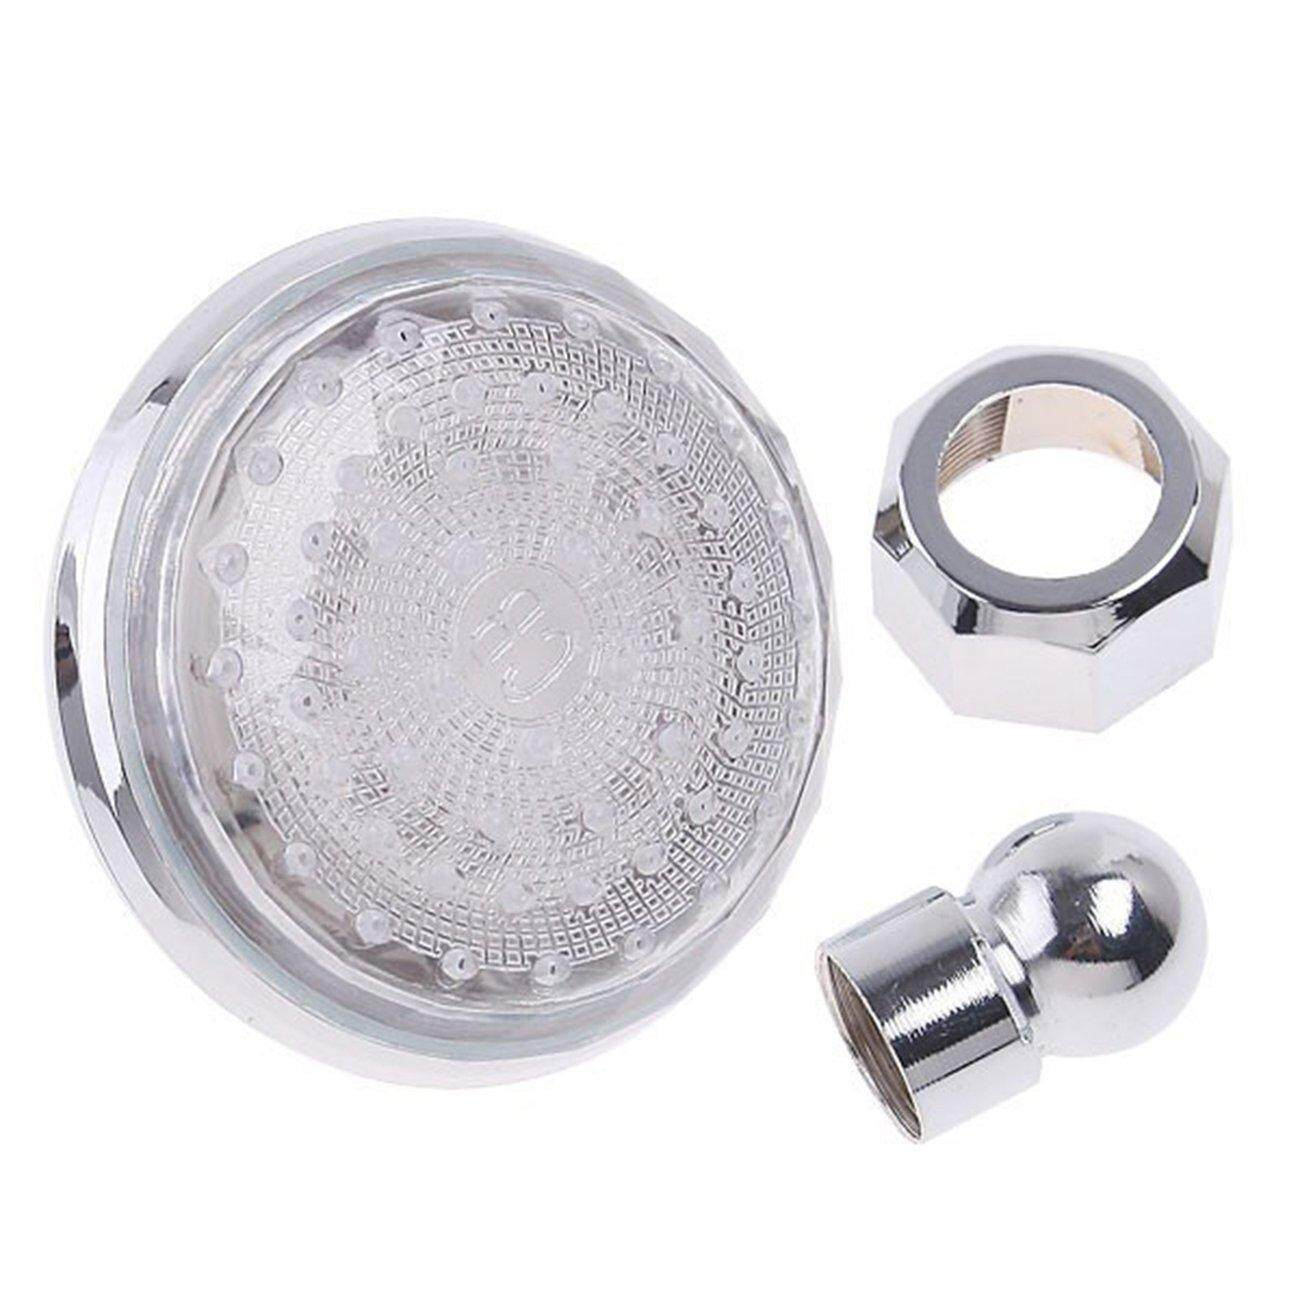 UINN Led Small Top Spray Flashing Round With Pattern Small Top Spray Ld8010-A2